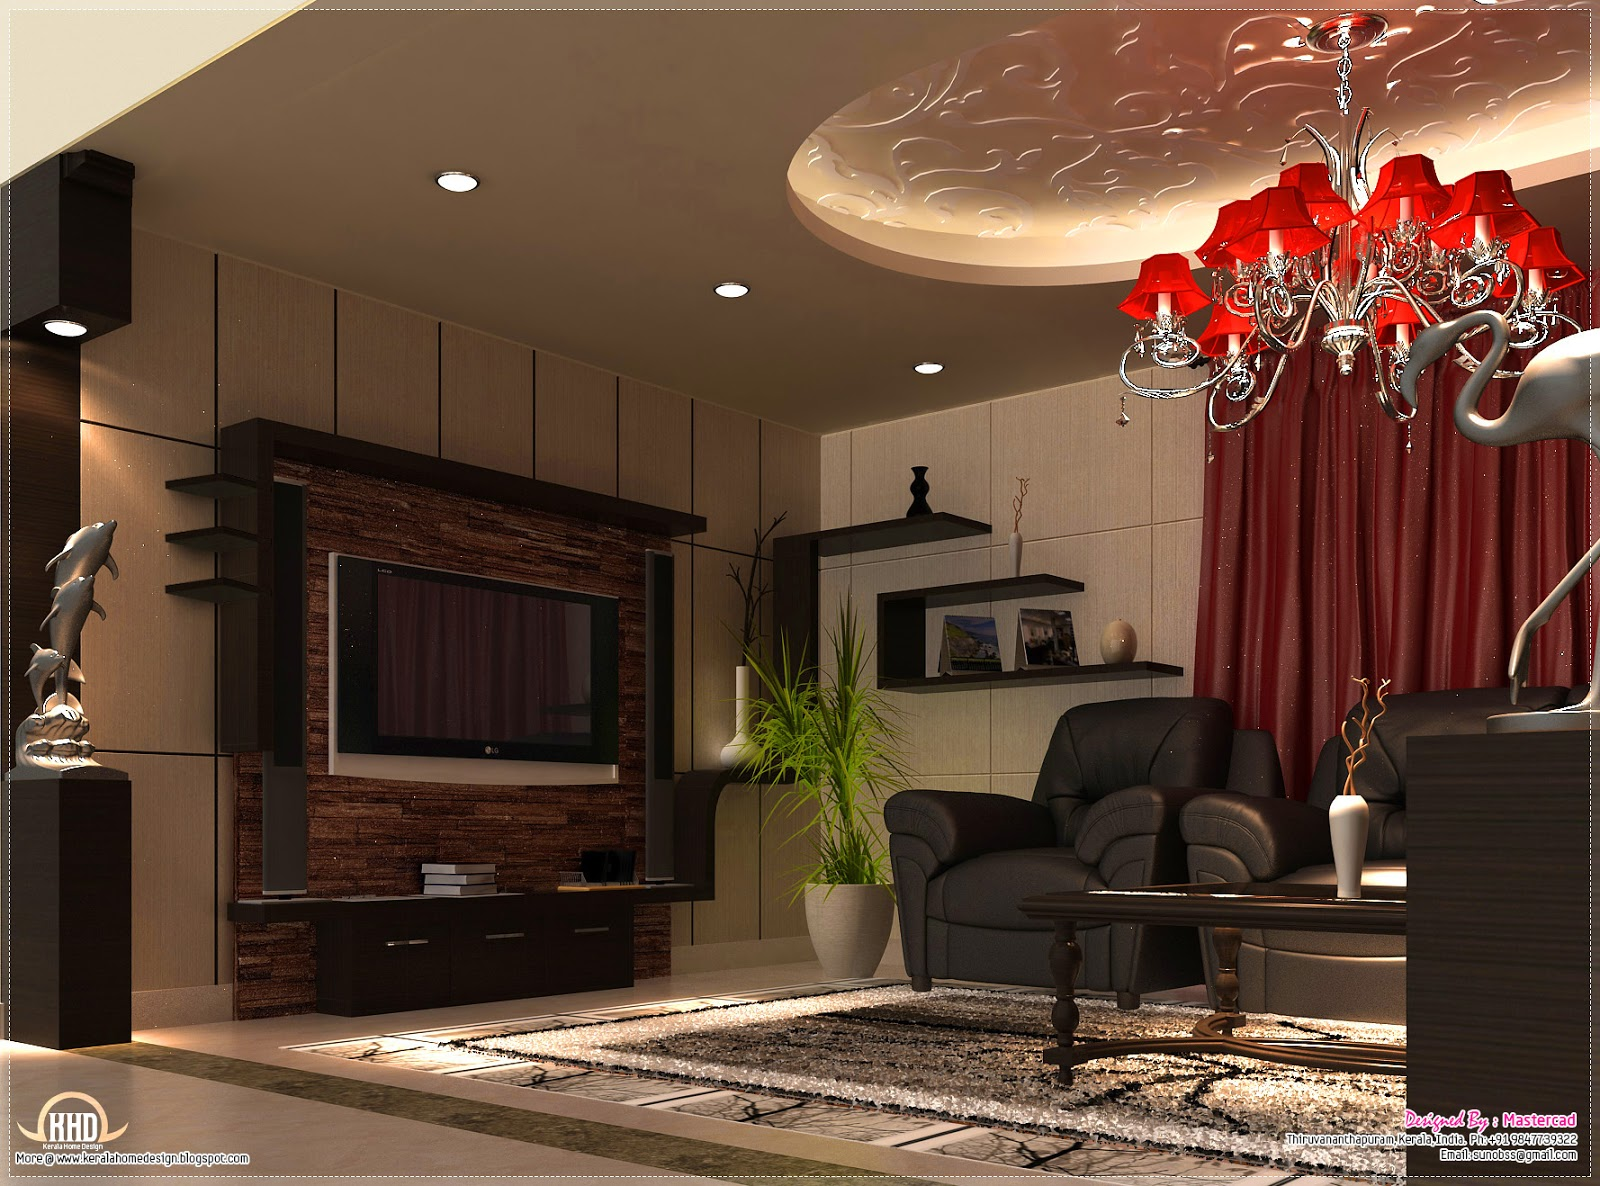 Interior design ideas kerala home design and floor plans for New room interior design